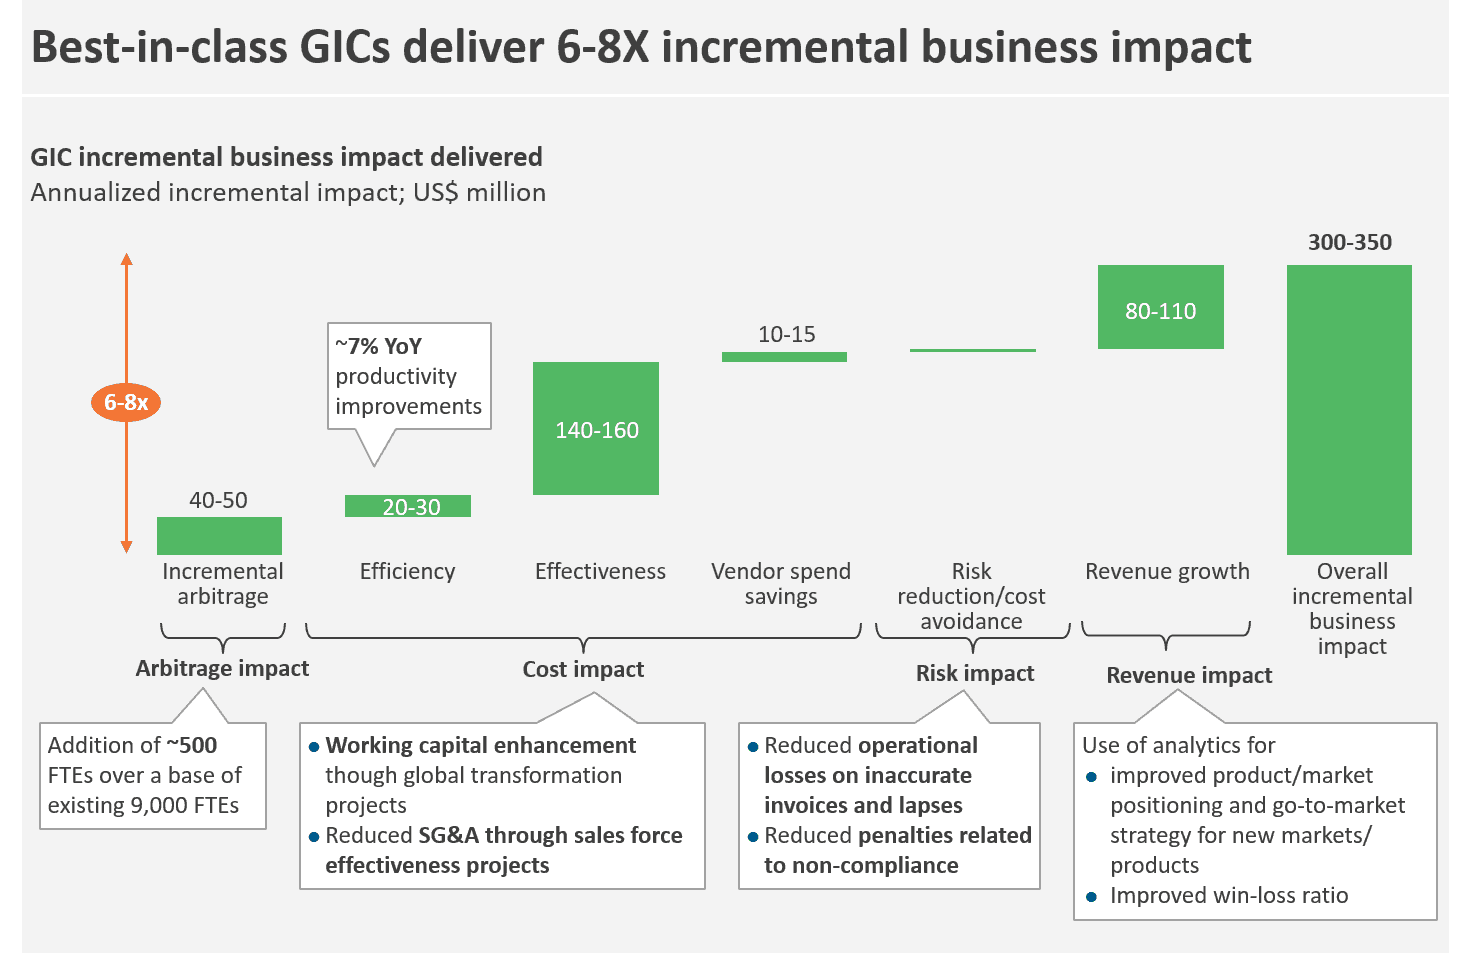 GIC incremental impact